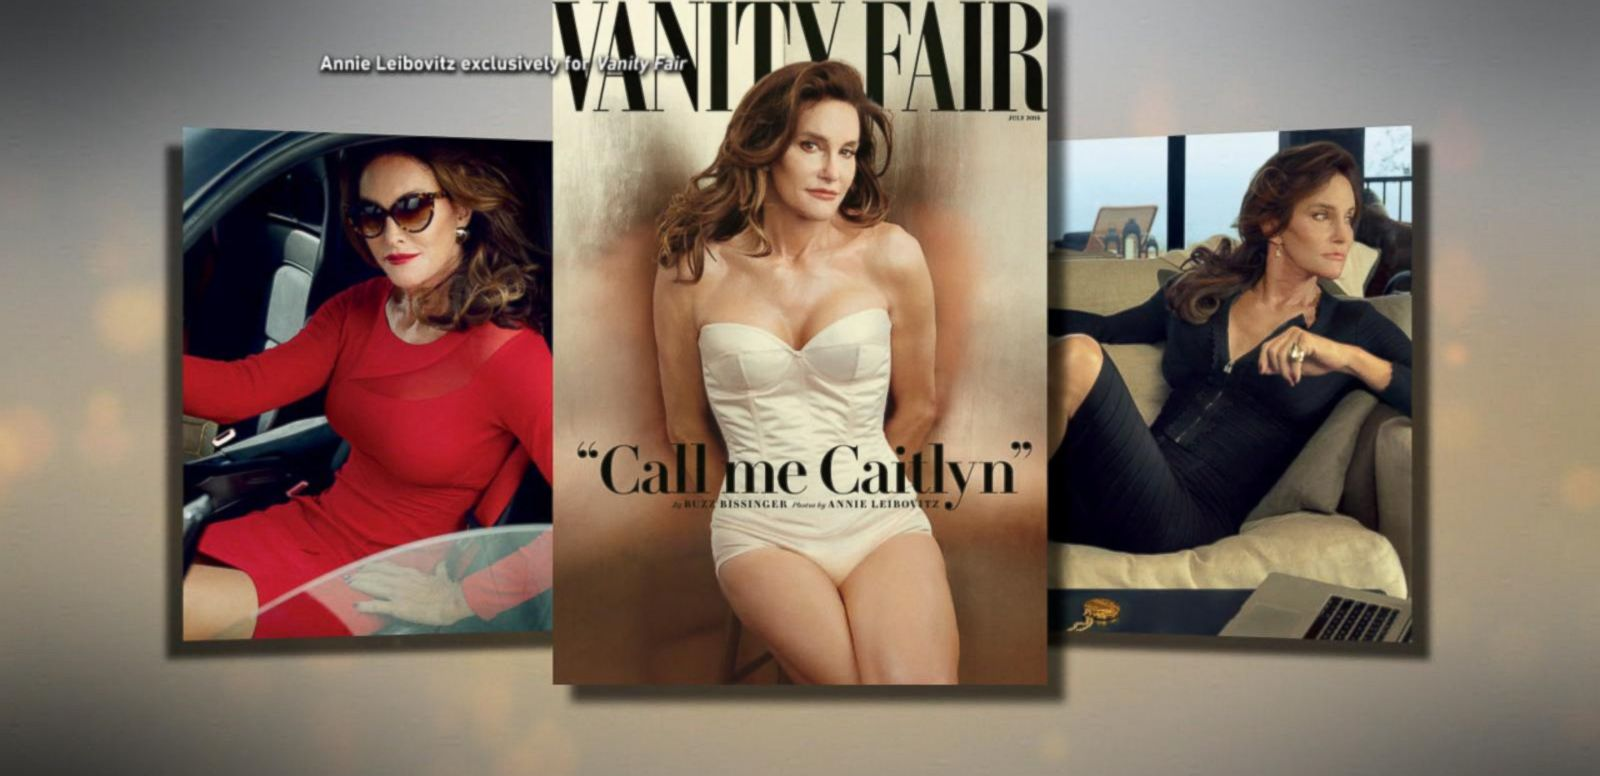 VIDEO: Caitlyn Jenner Makes Splash With Public Debut